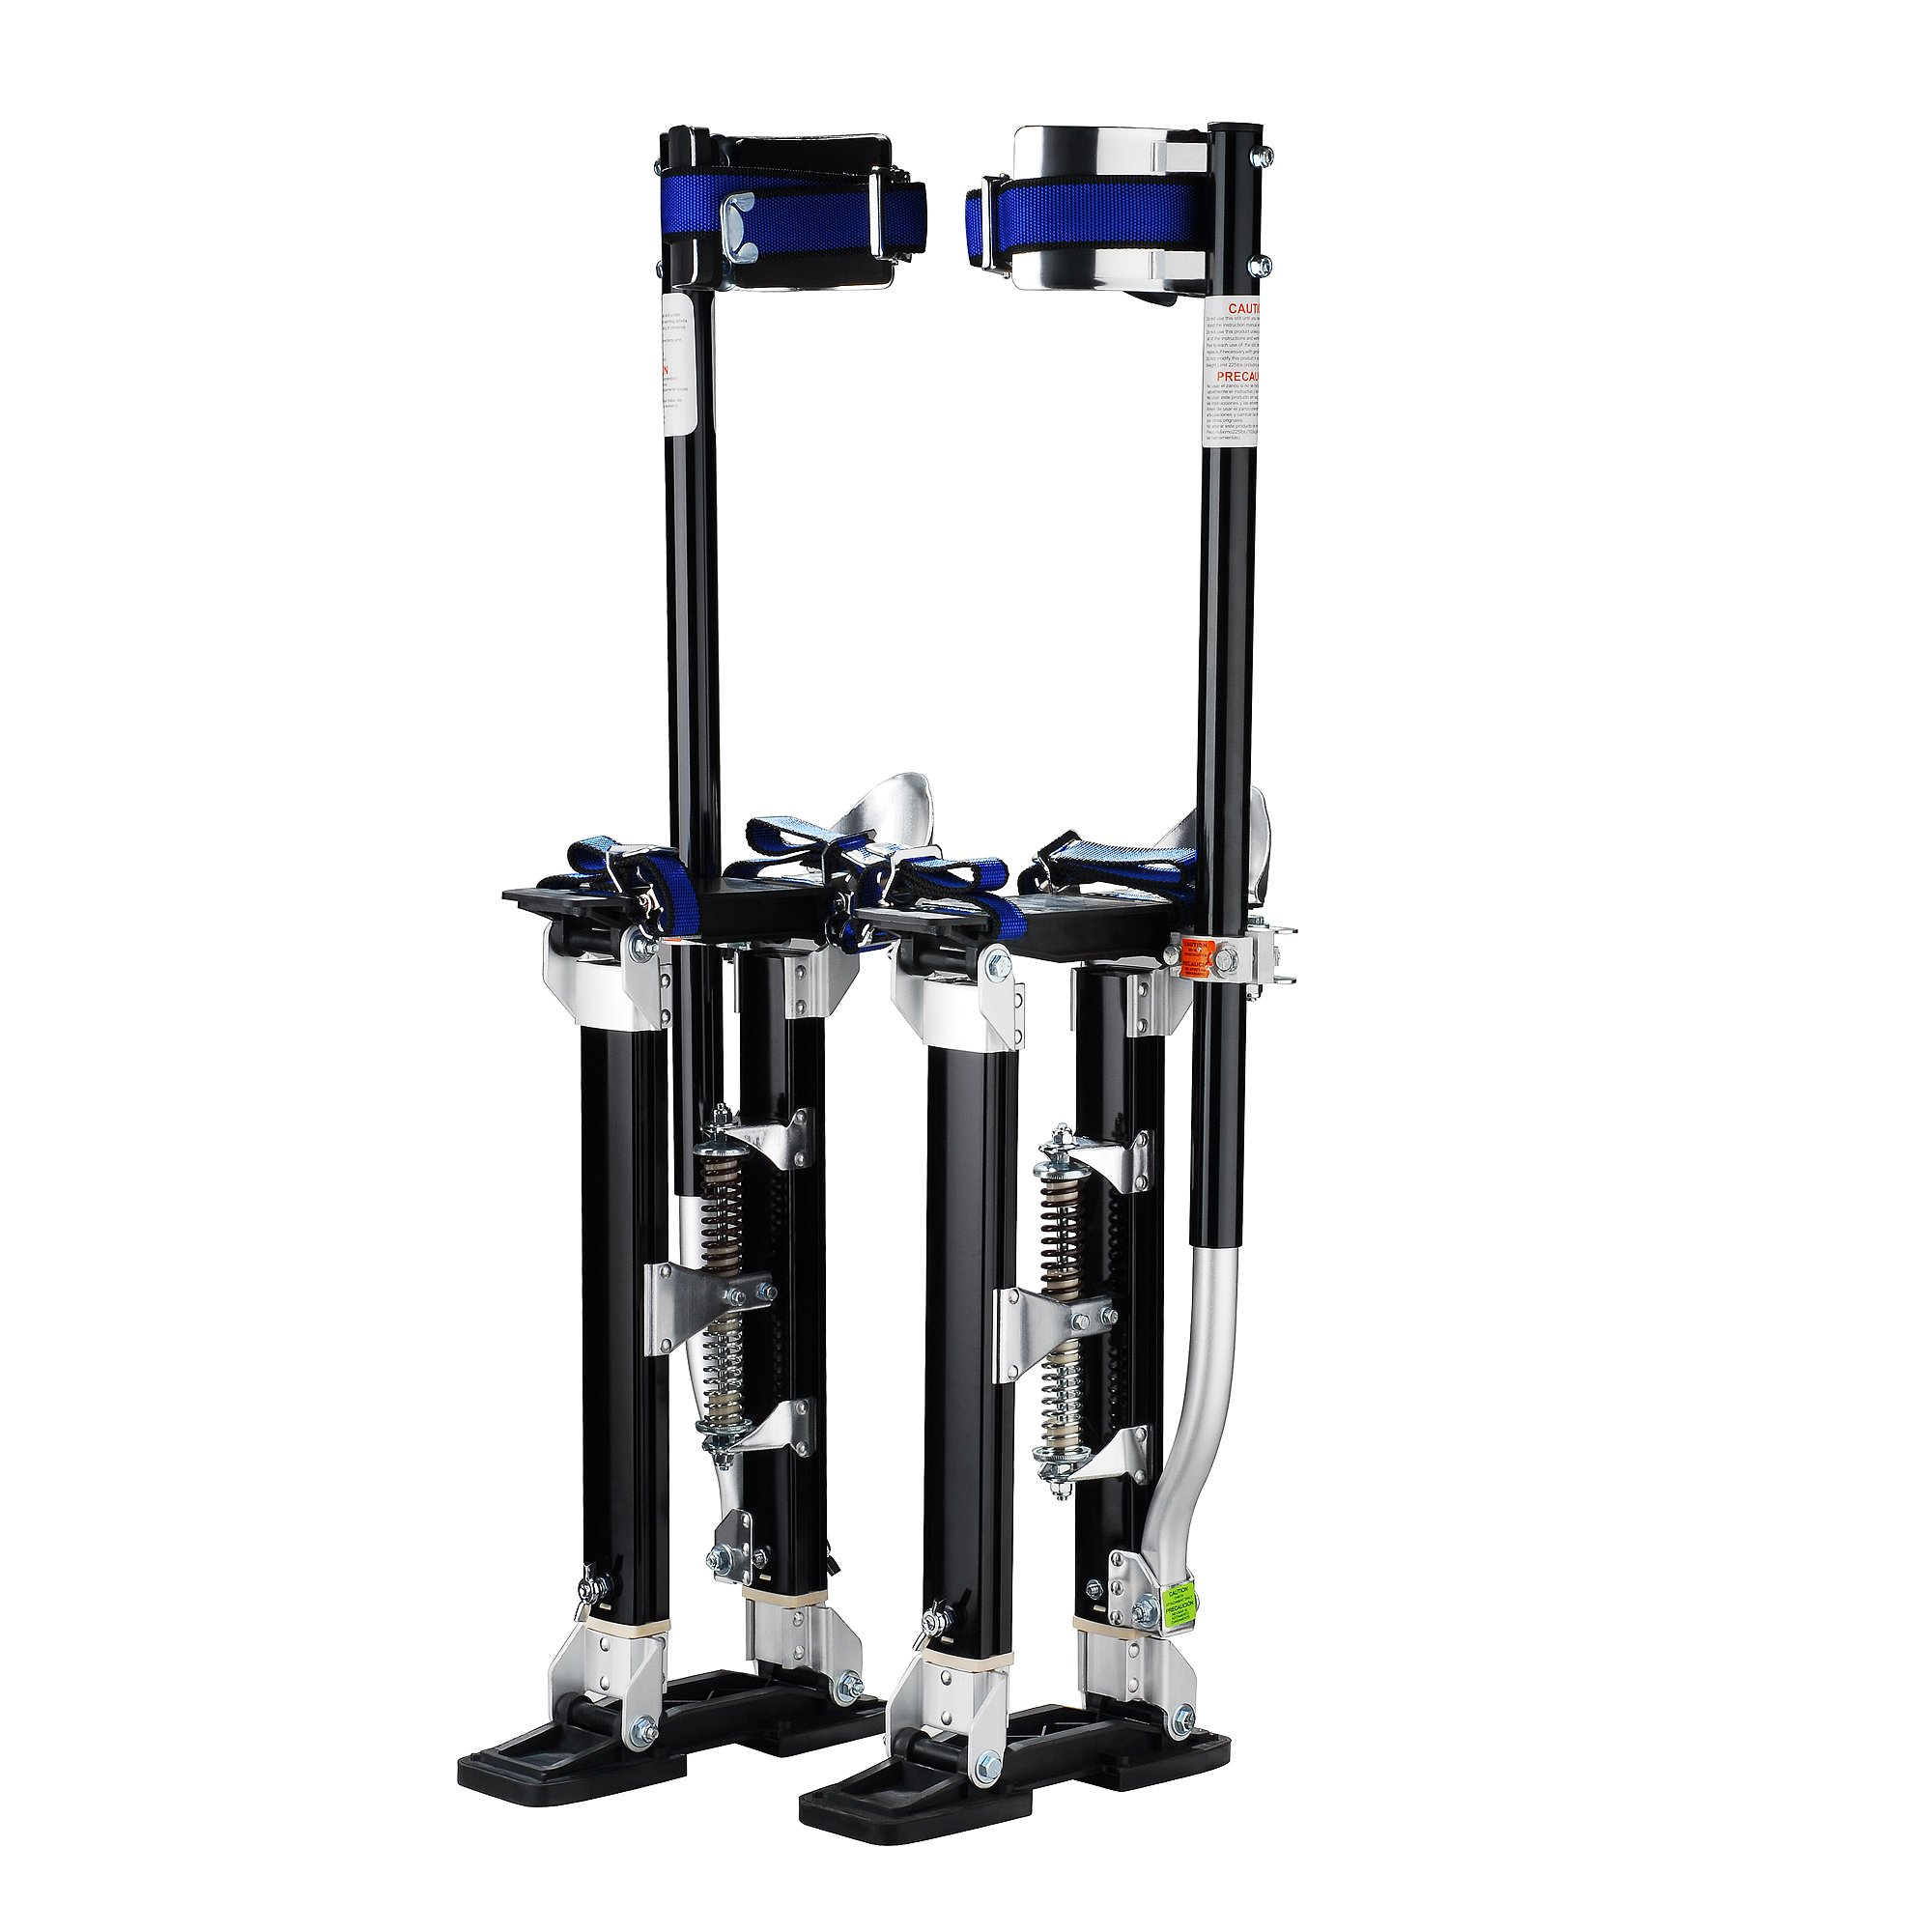 1116 Pentagon Tool ''Tall Guyz'' Professional 18''-30'' Black Drywall Stilts For Sheetrock Painting or Cleaning